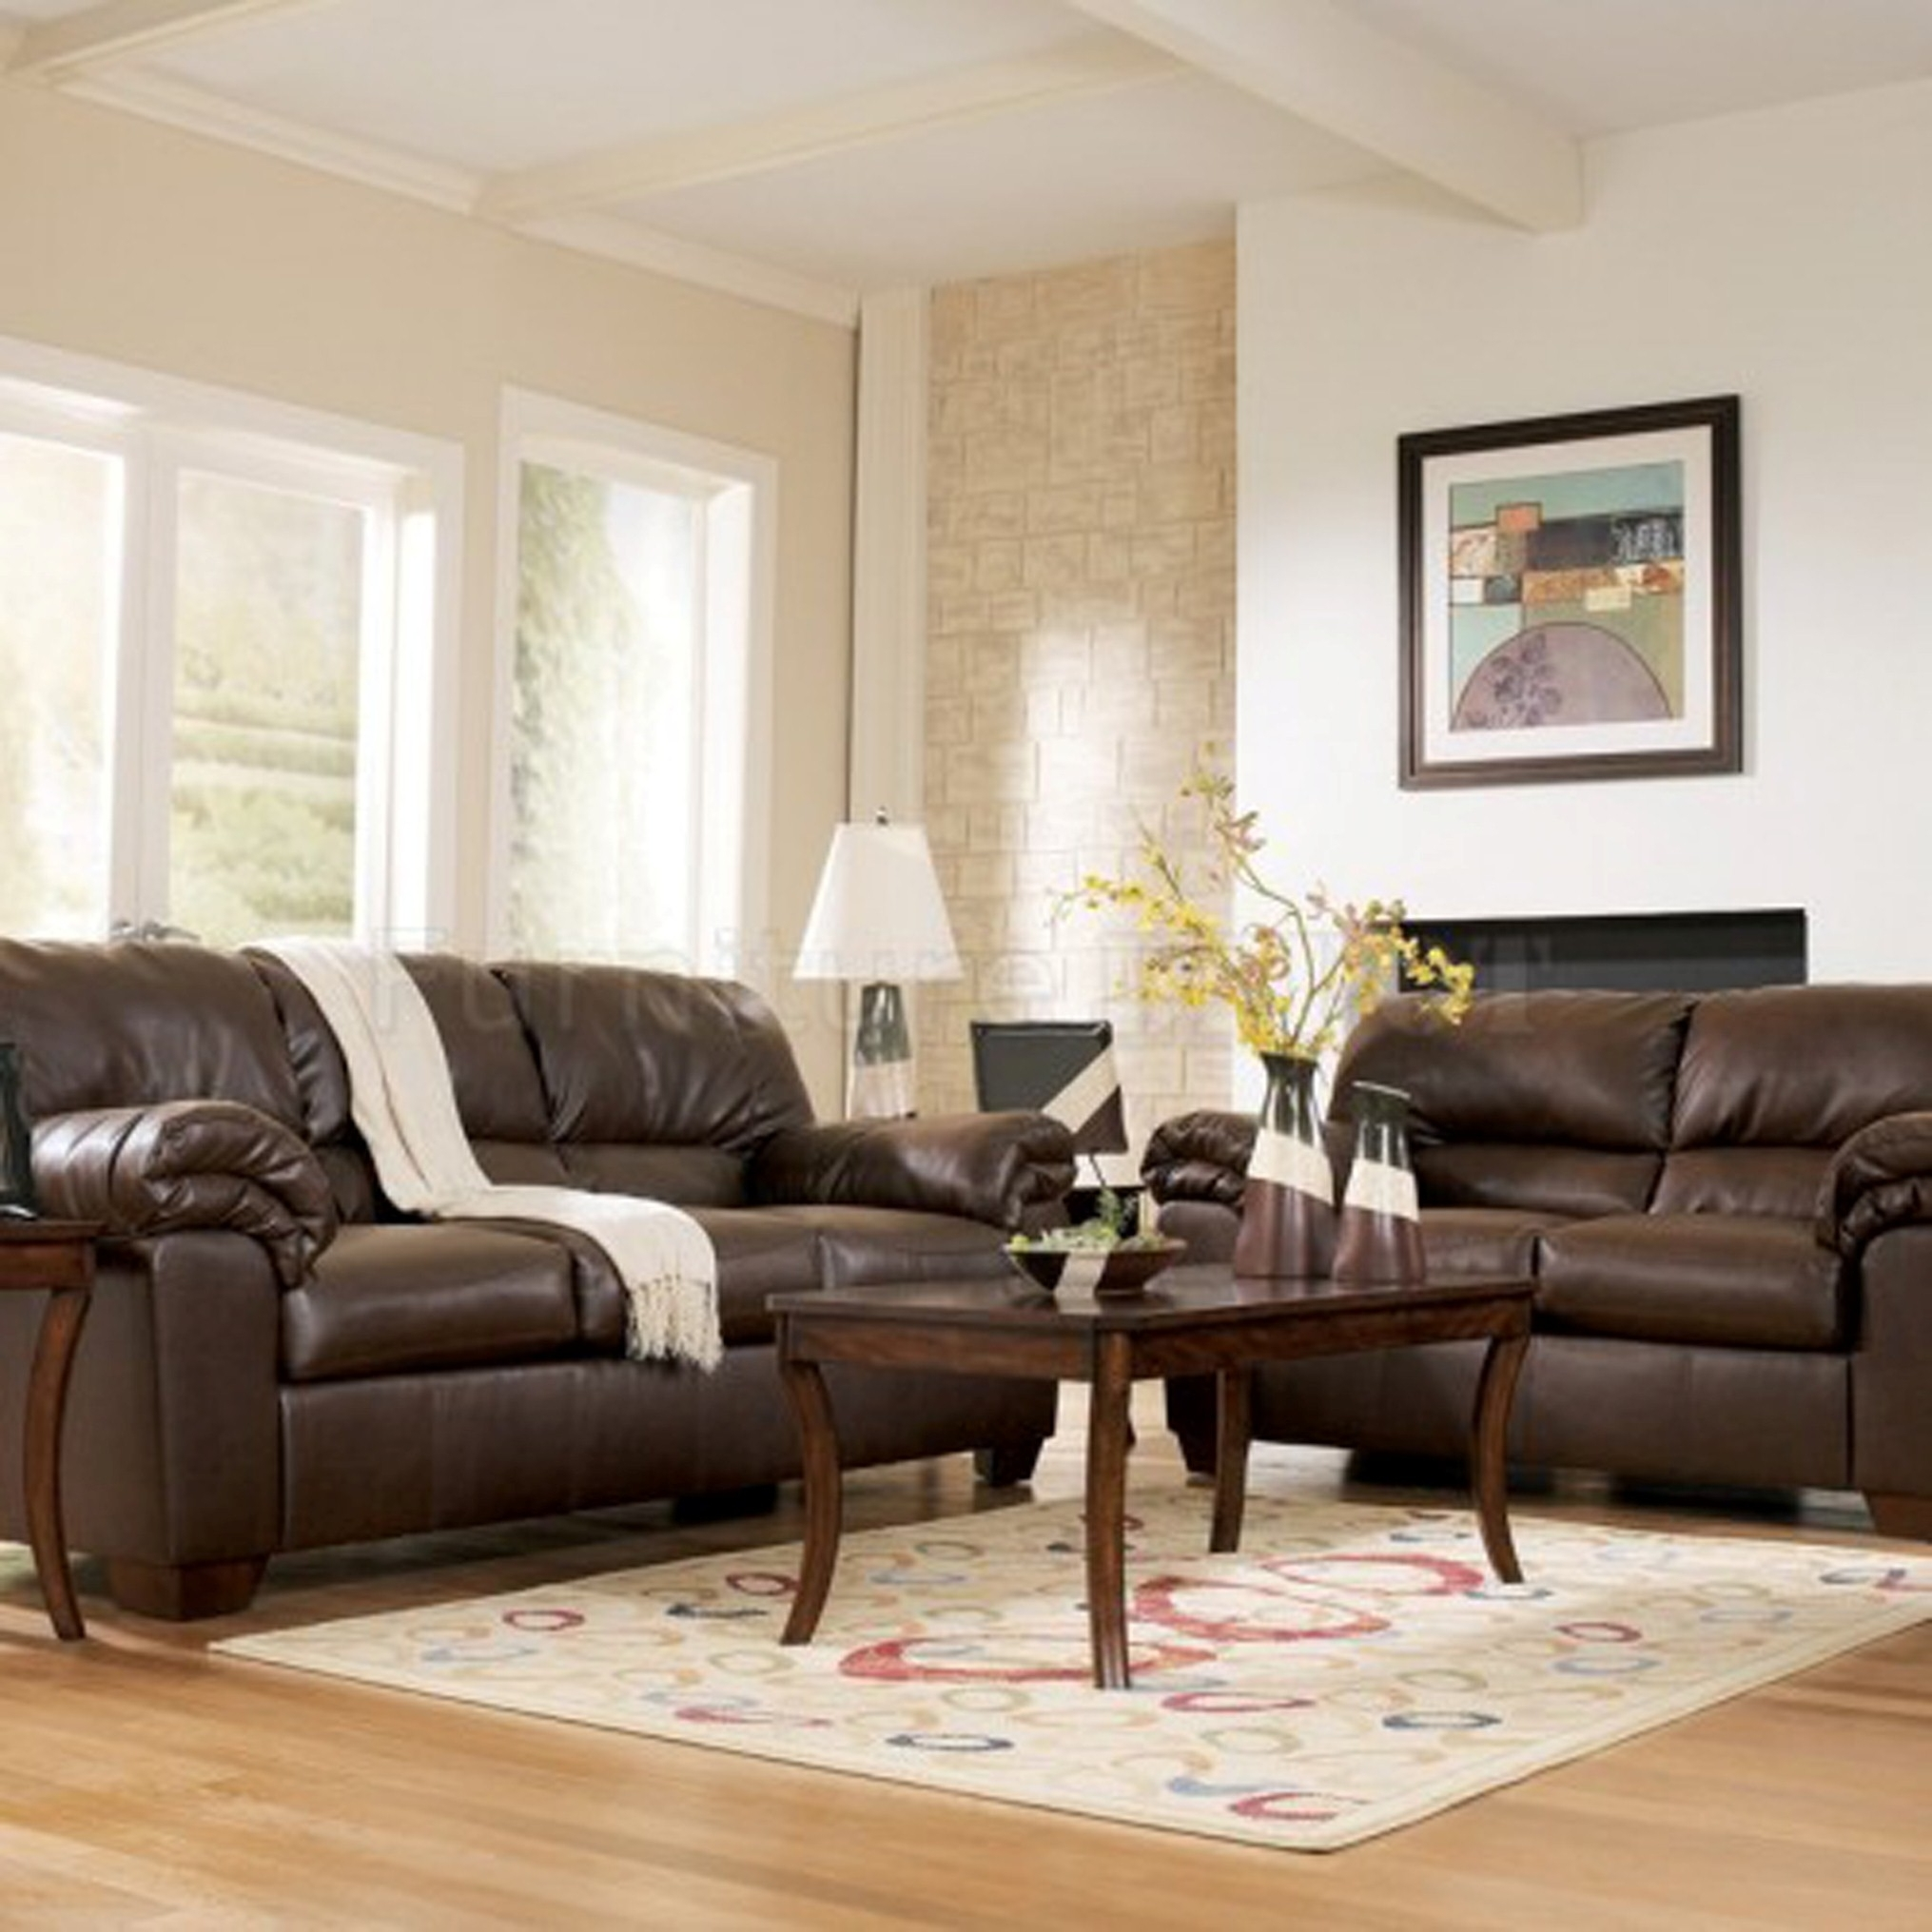 Living room ideas brown leather sofa modern house for Brown leather living room decorating ideas